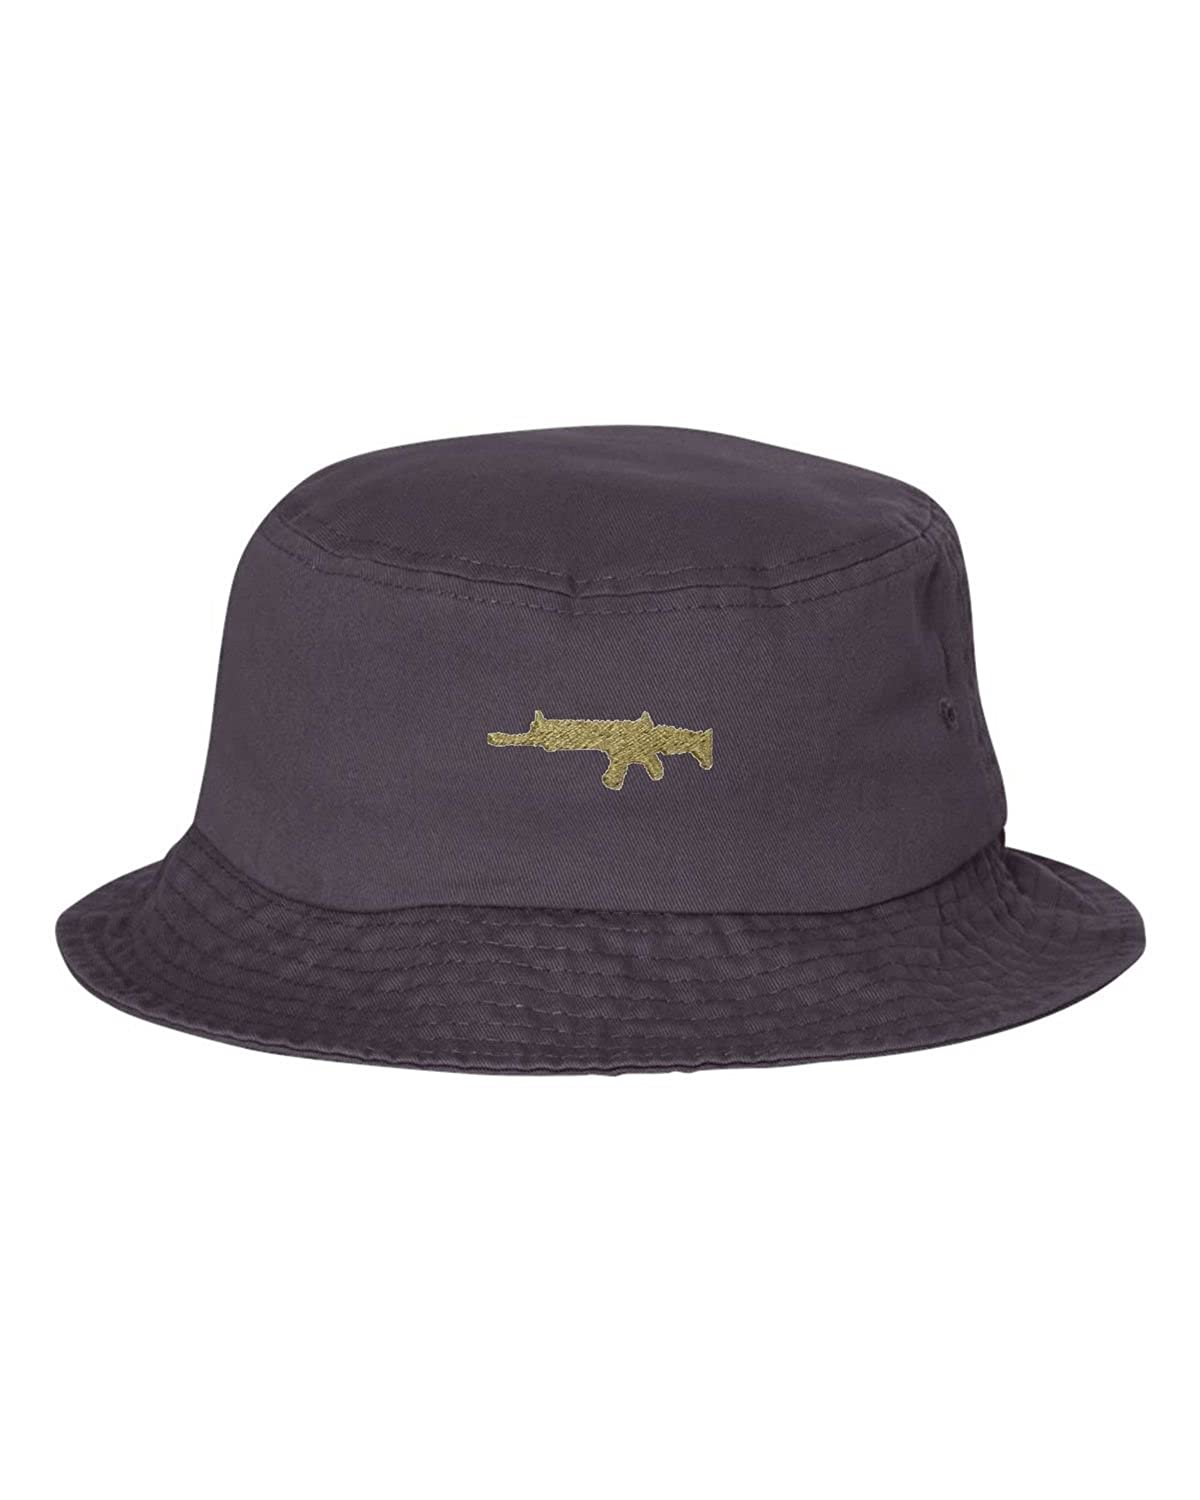 Adult Gold Scar Embroidered Bucket Cap Dad Hat